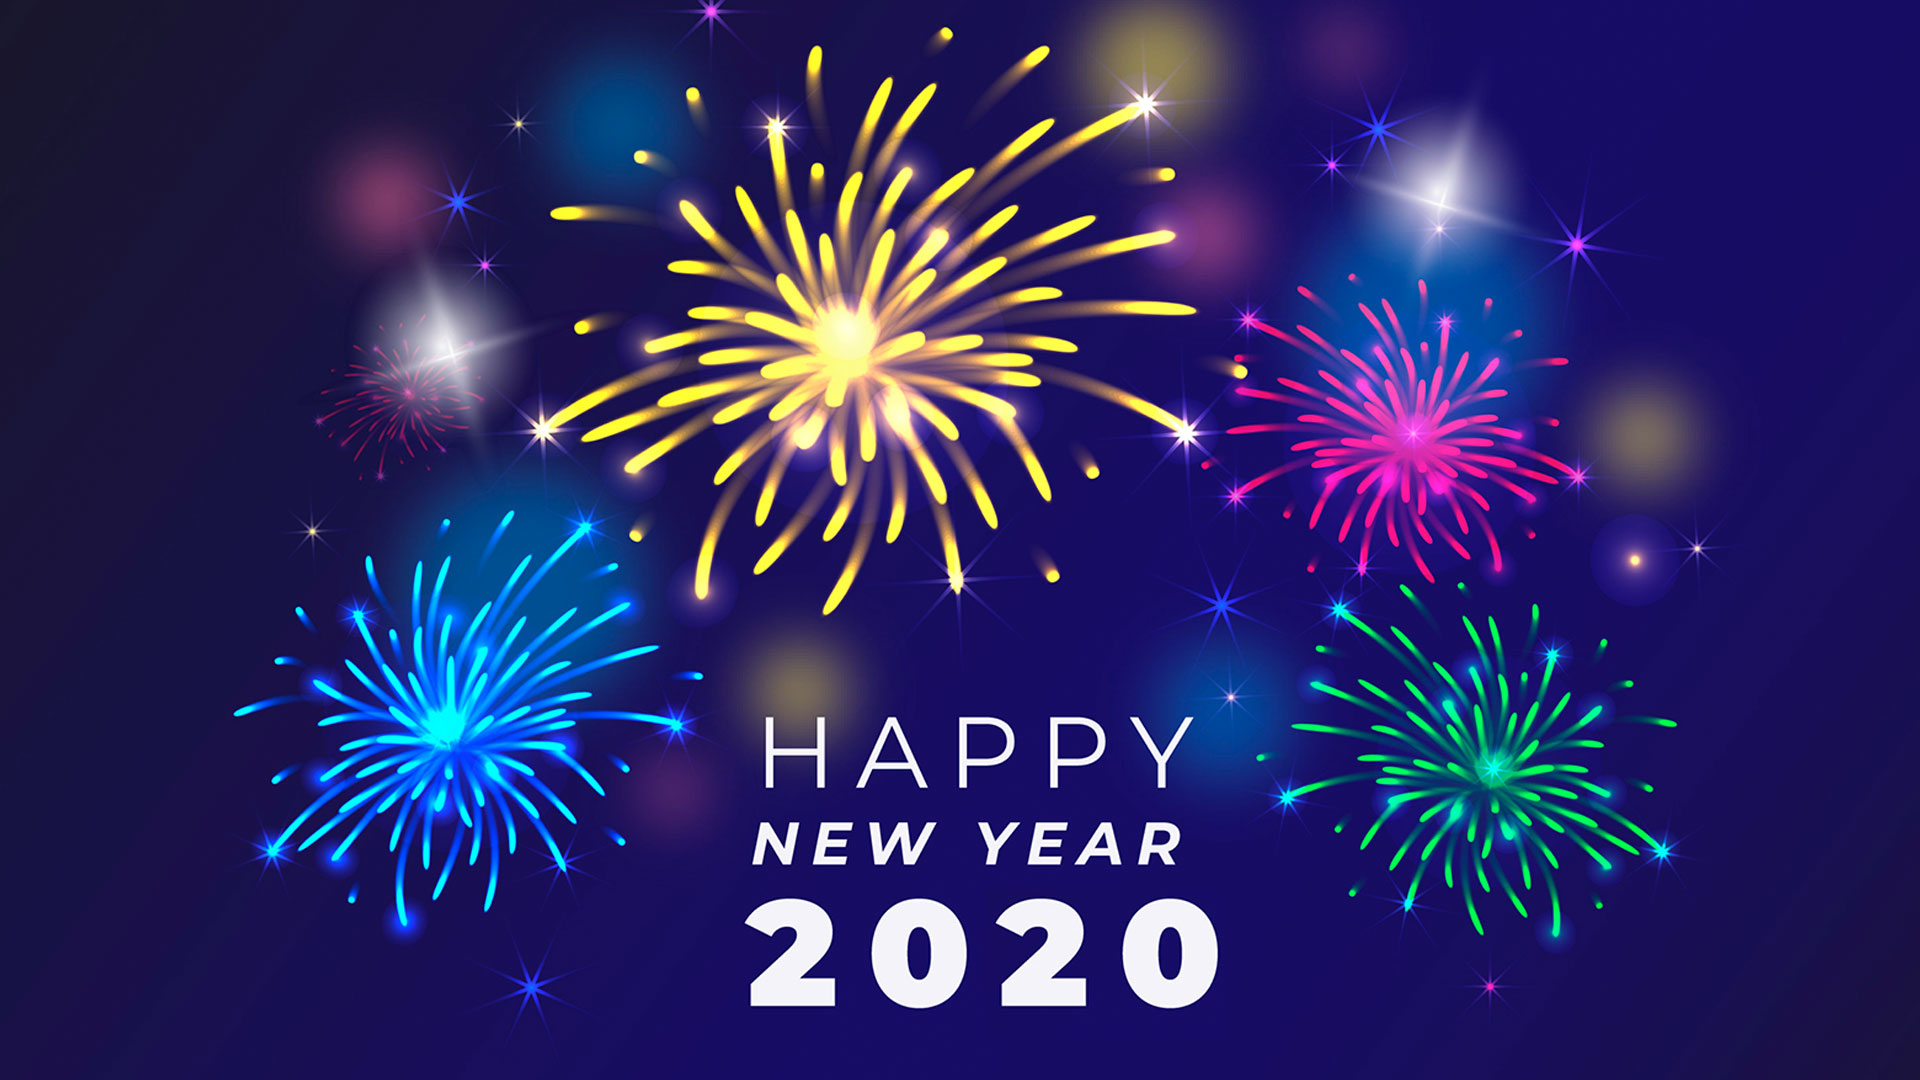 30 Beautiful New Year 2020 HD Wallpapers to Beautify Your Desktop 1920x1080